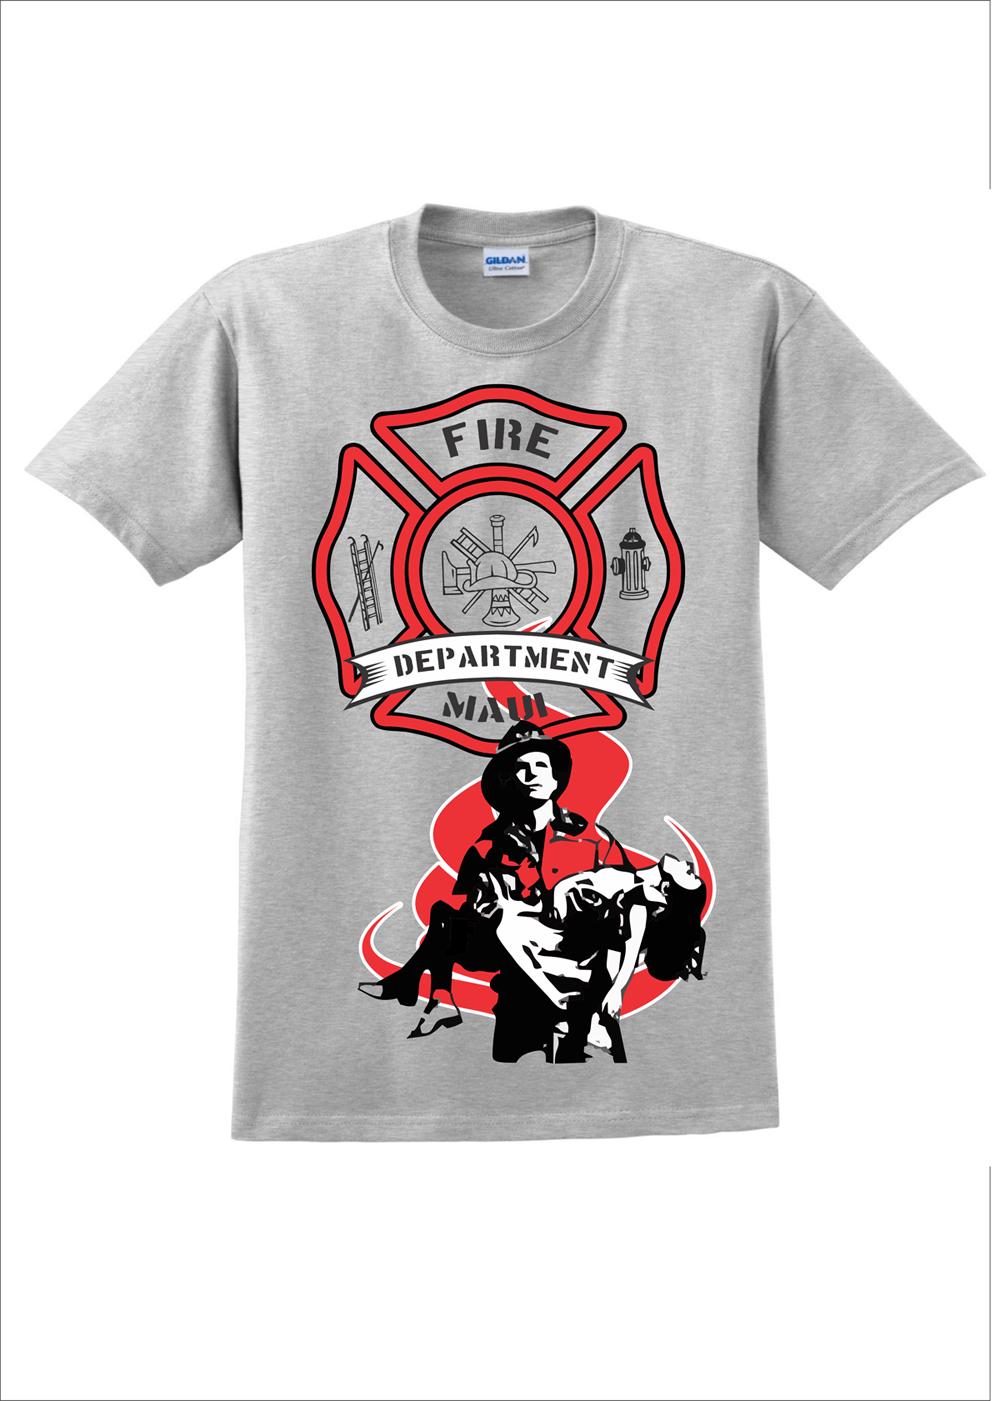 Fire department t shirt design for a company by awehh for Fire department tee shirt designs